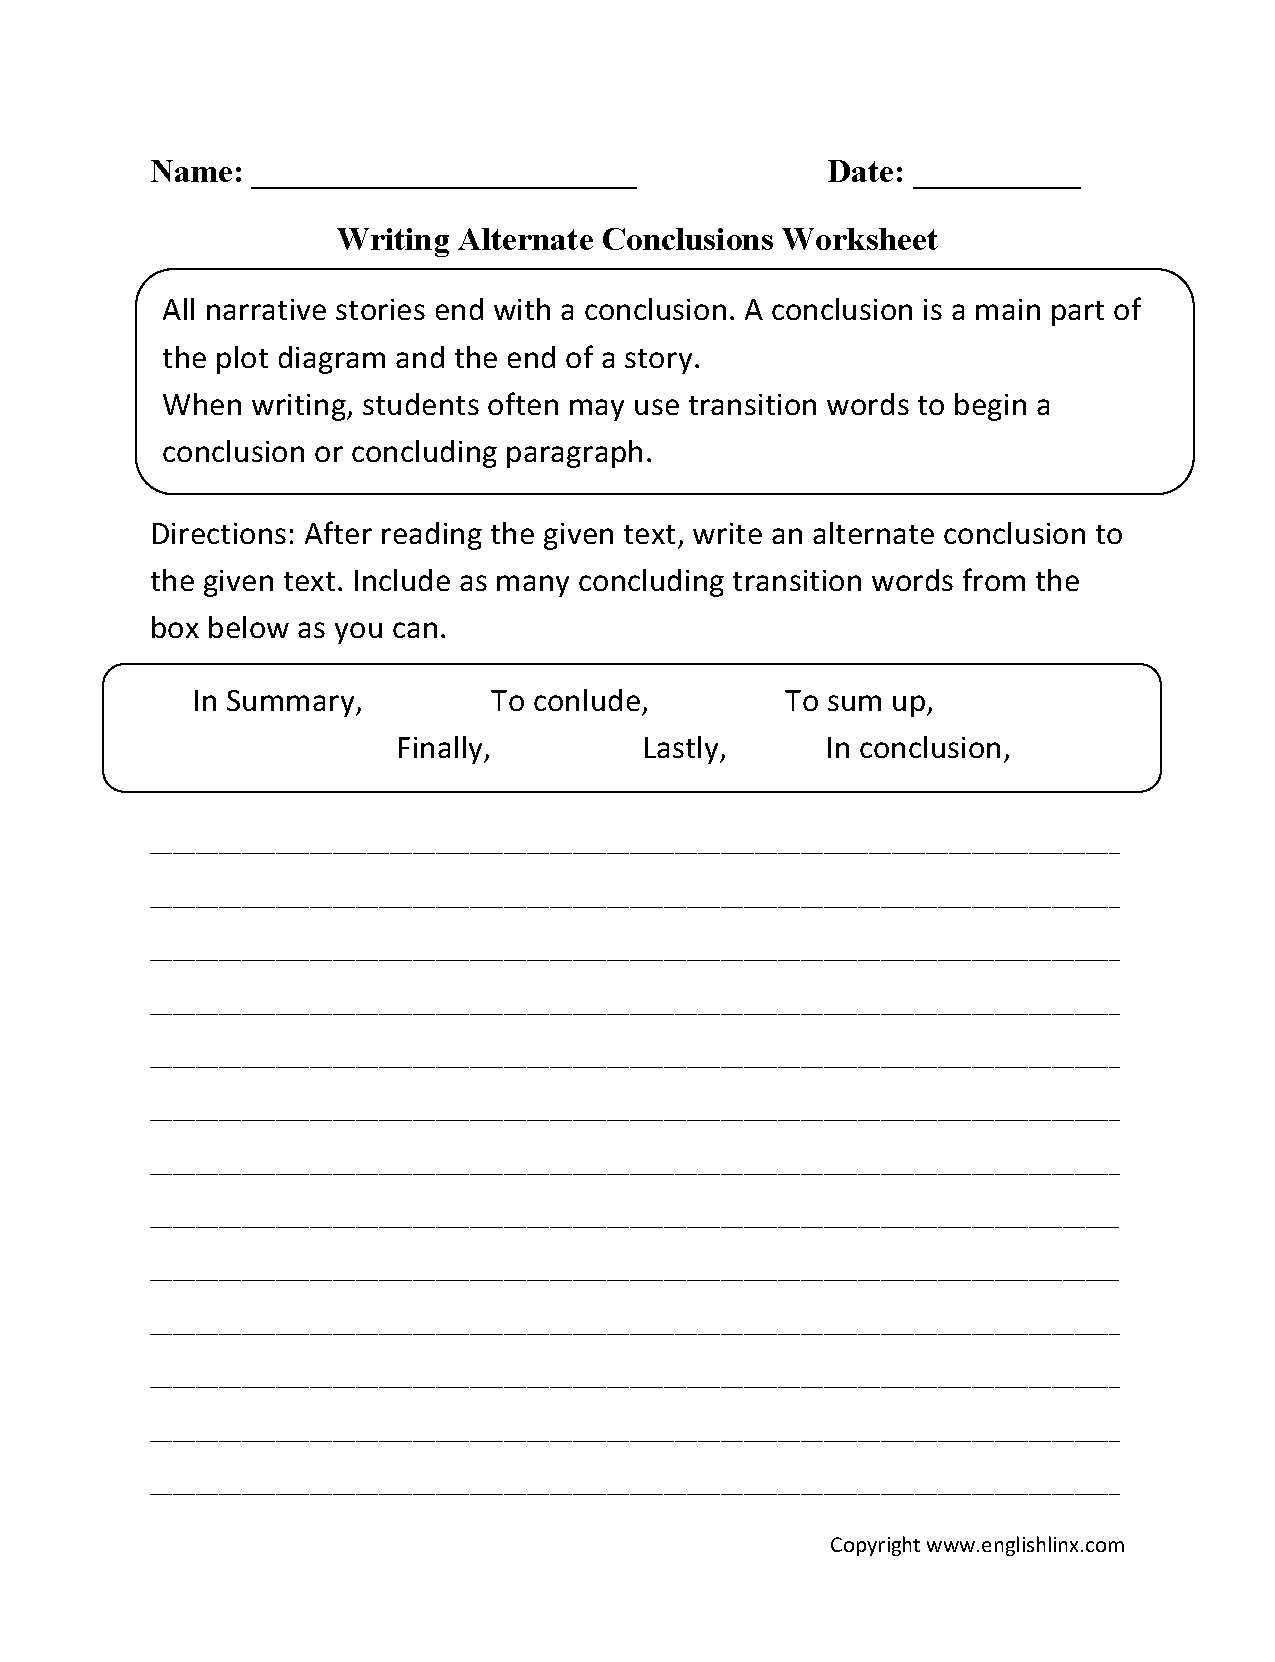 Writing Alternate Conclusions Worksheets